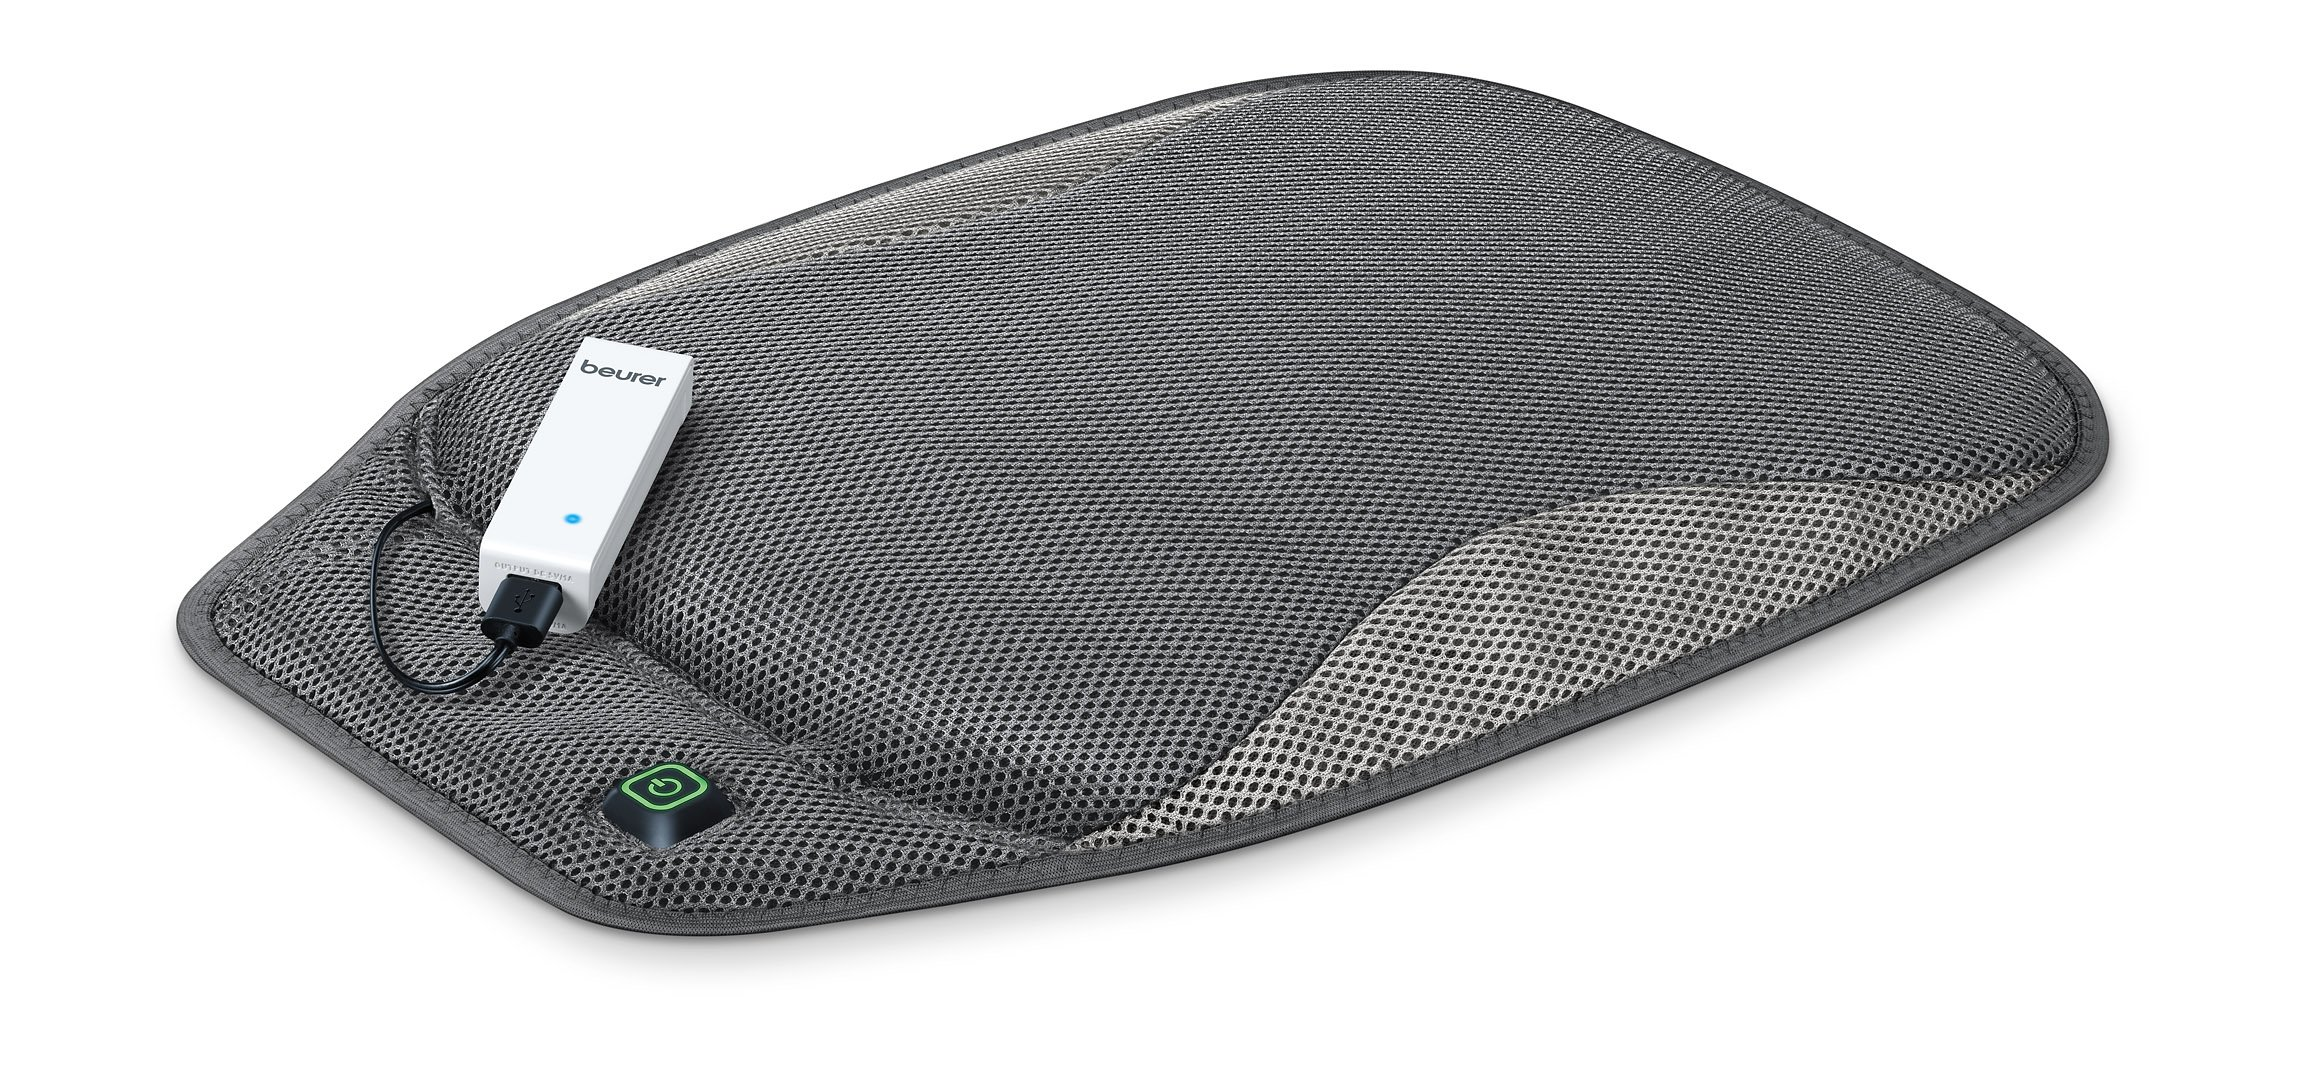 Beurer Portable Wireless Heated Seat Cushion with Convenient Storage Bag, Rechargeable, Durable for Indoor & Outdoor Use, Hk47 by Beurer